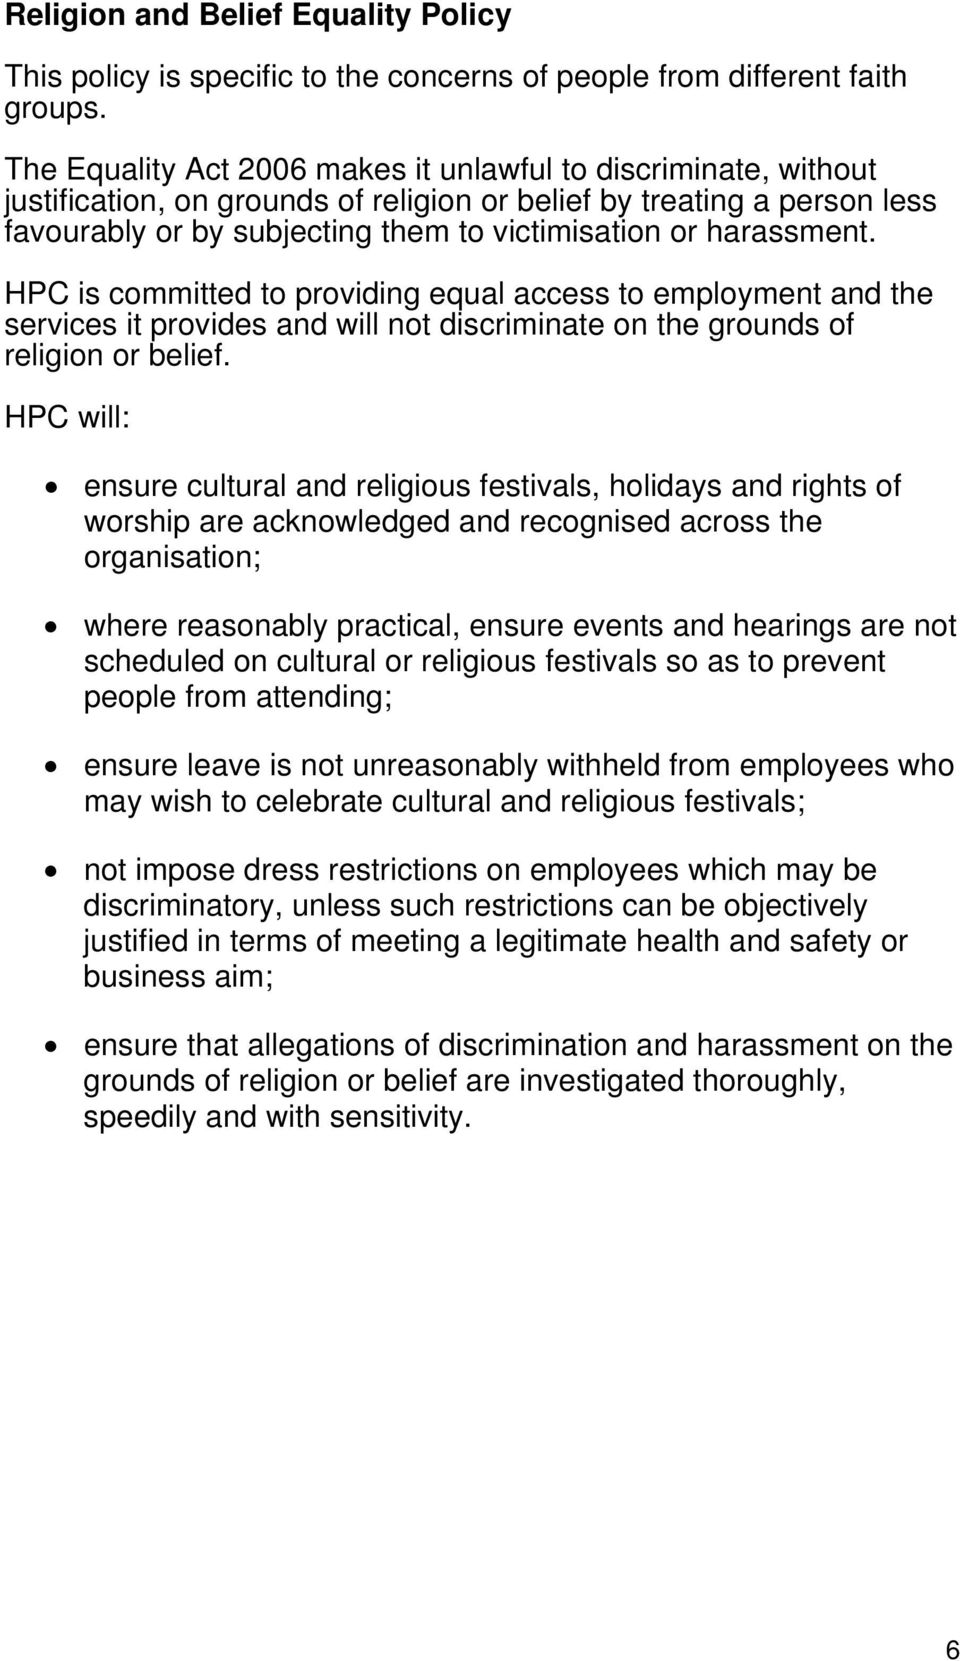 harassment. HPC is committed to providing equal access to employment and the services it provides and will not discriminate on the grounds of religion or belief.